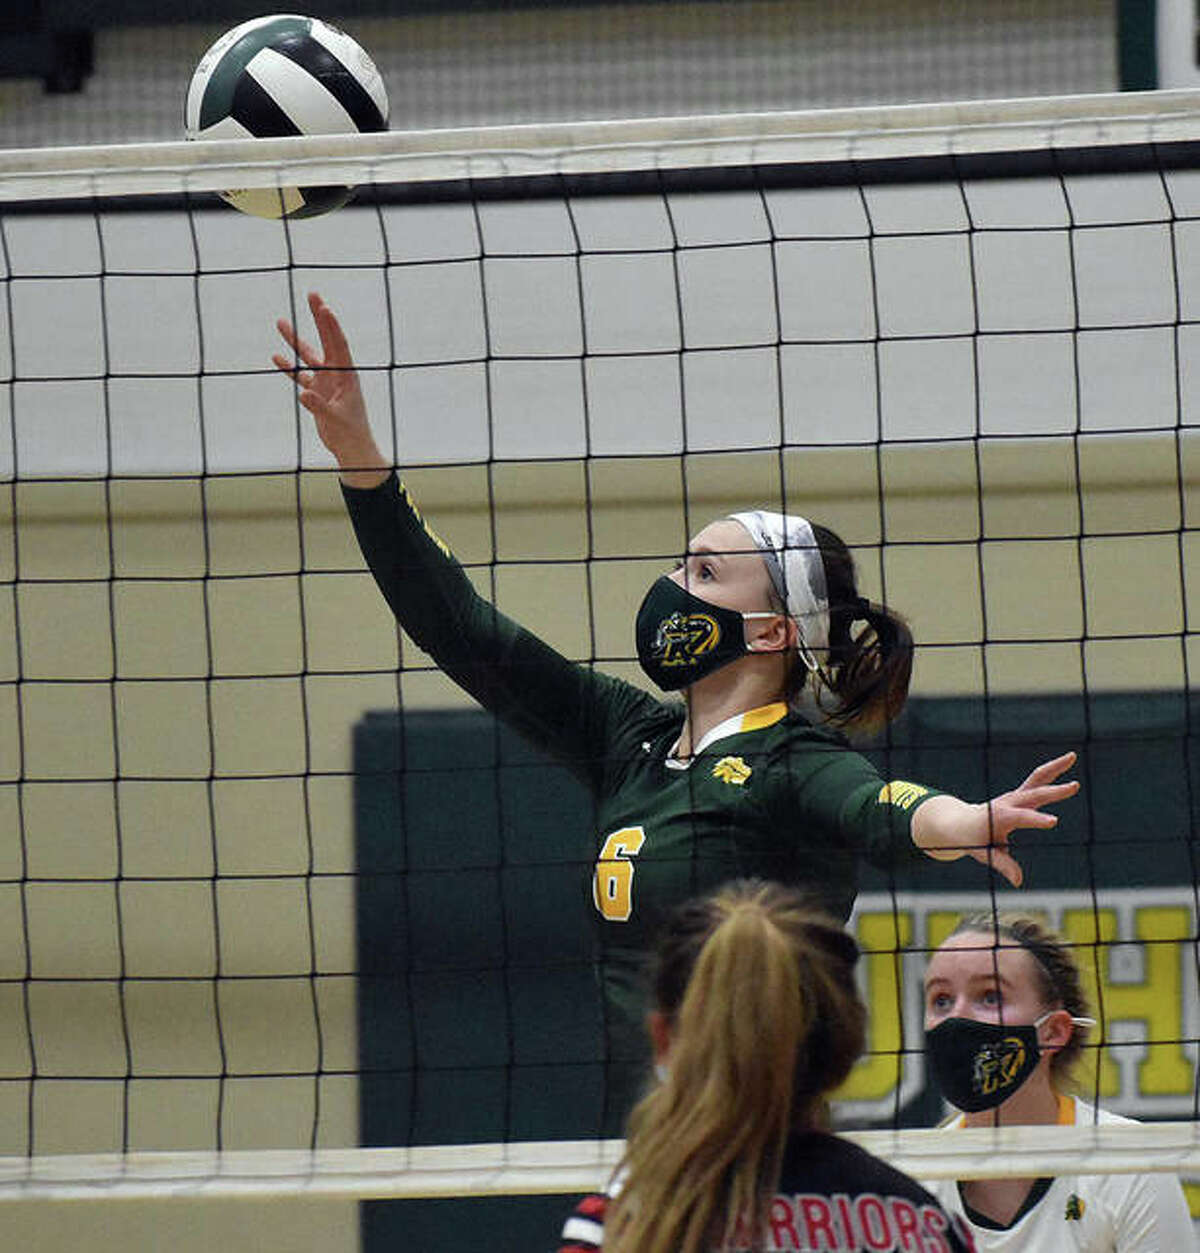 Metro-East Lutheran's Anne Kienle tips a shot over the net in the first game against Granite City.